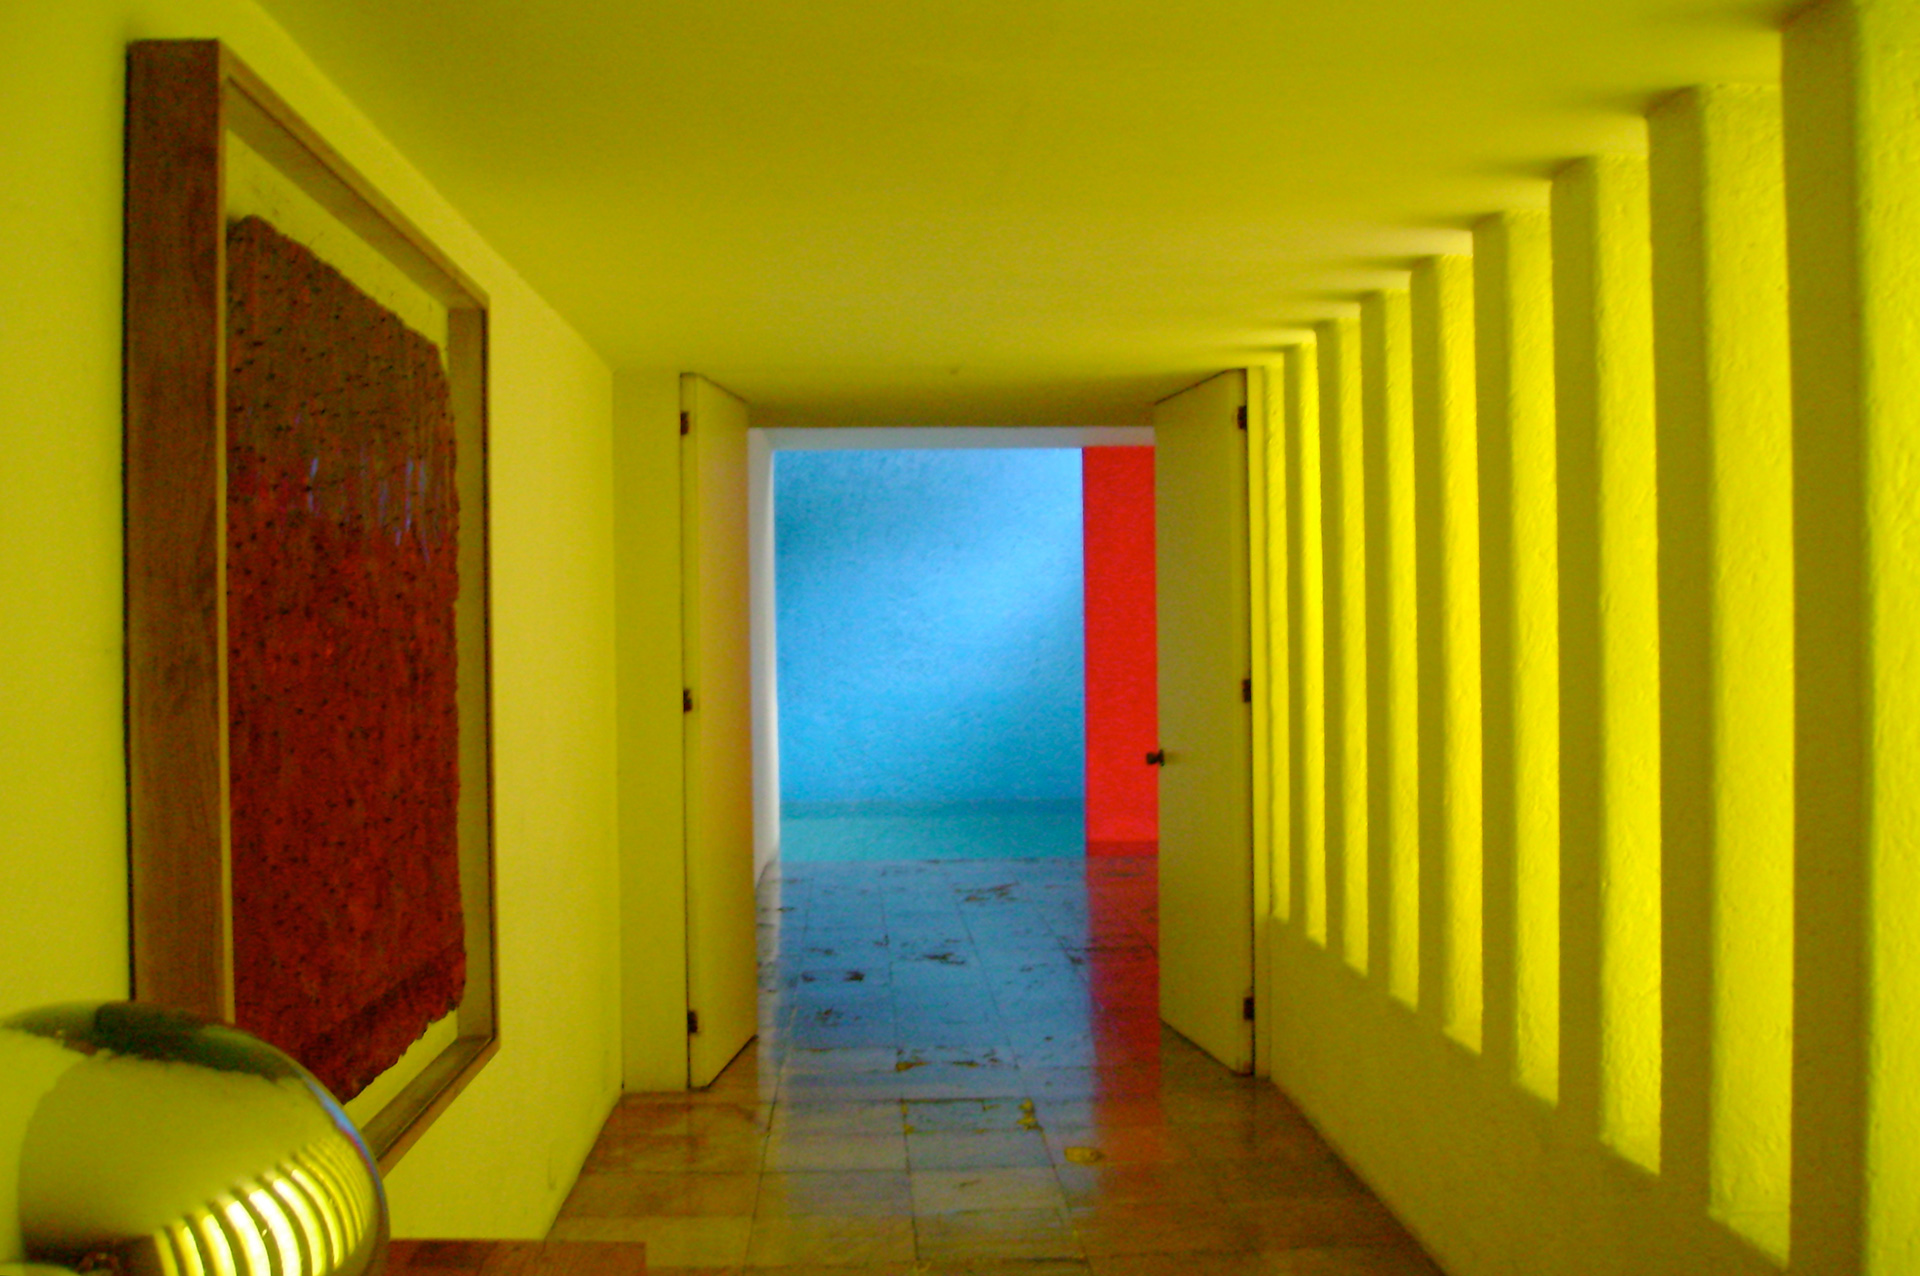 Interior of Casa Gilardi, by Luis Barragán, in Mexico City, Mexico | Luis Barragán | STIRworld